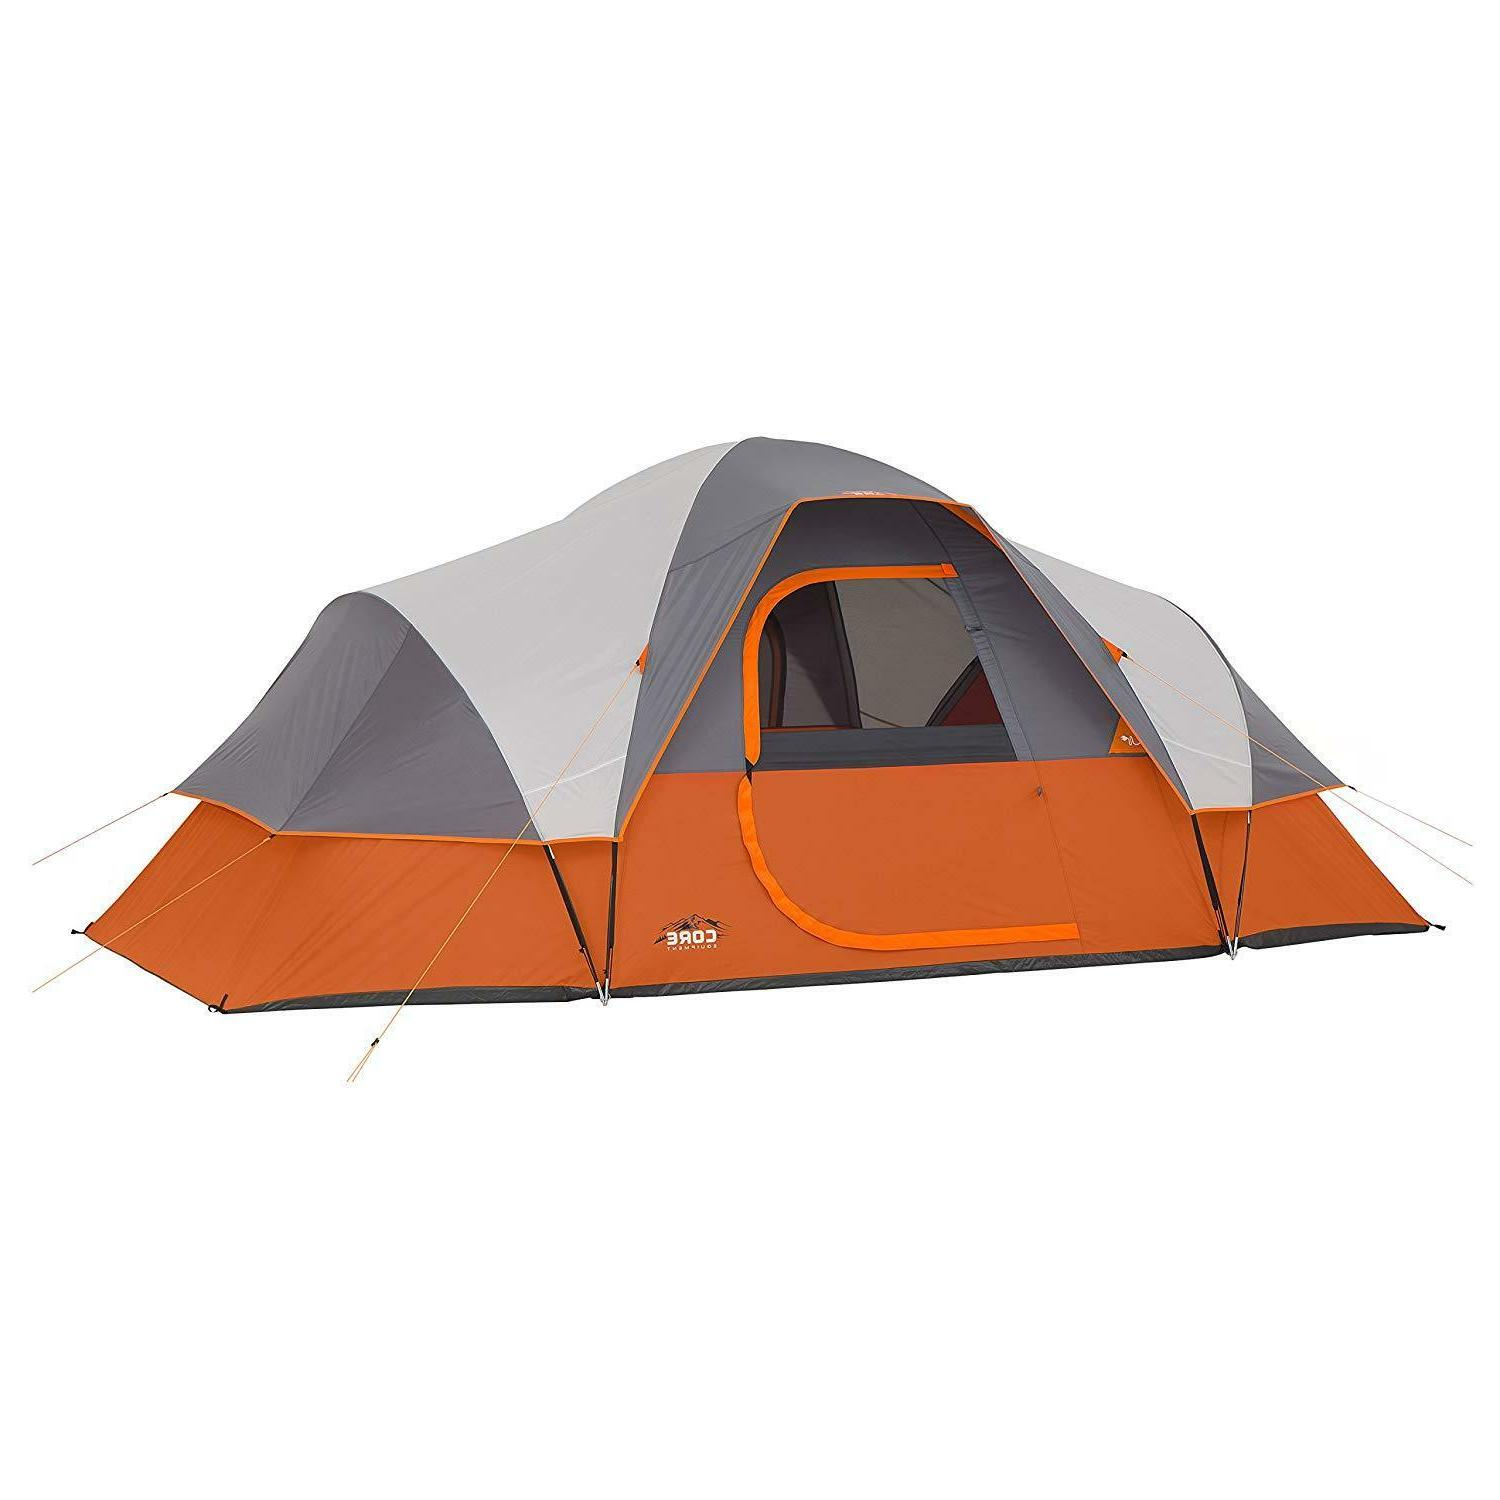 9 person extended dome tent camping trip